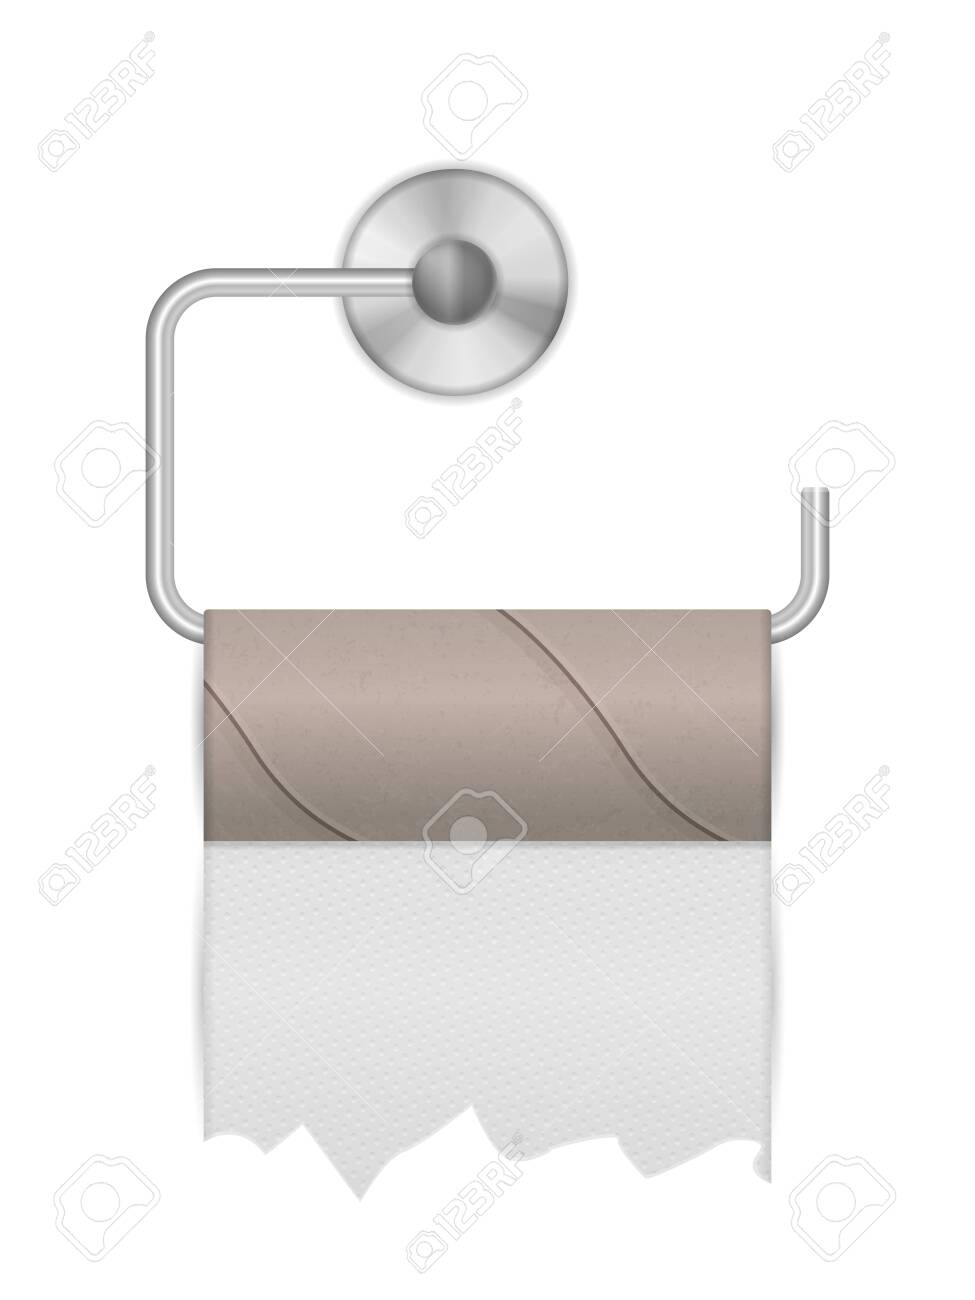 Empty toilet paper roll on a white background. Vector illustration. - 150217863